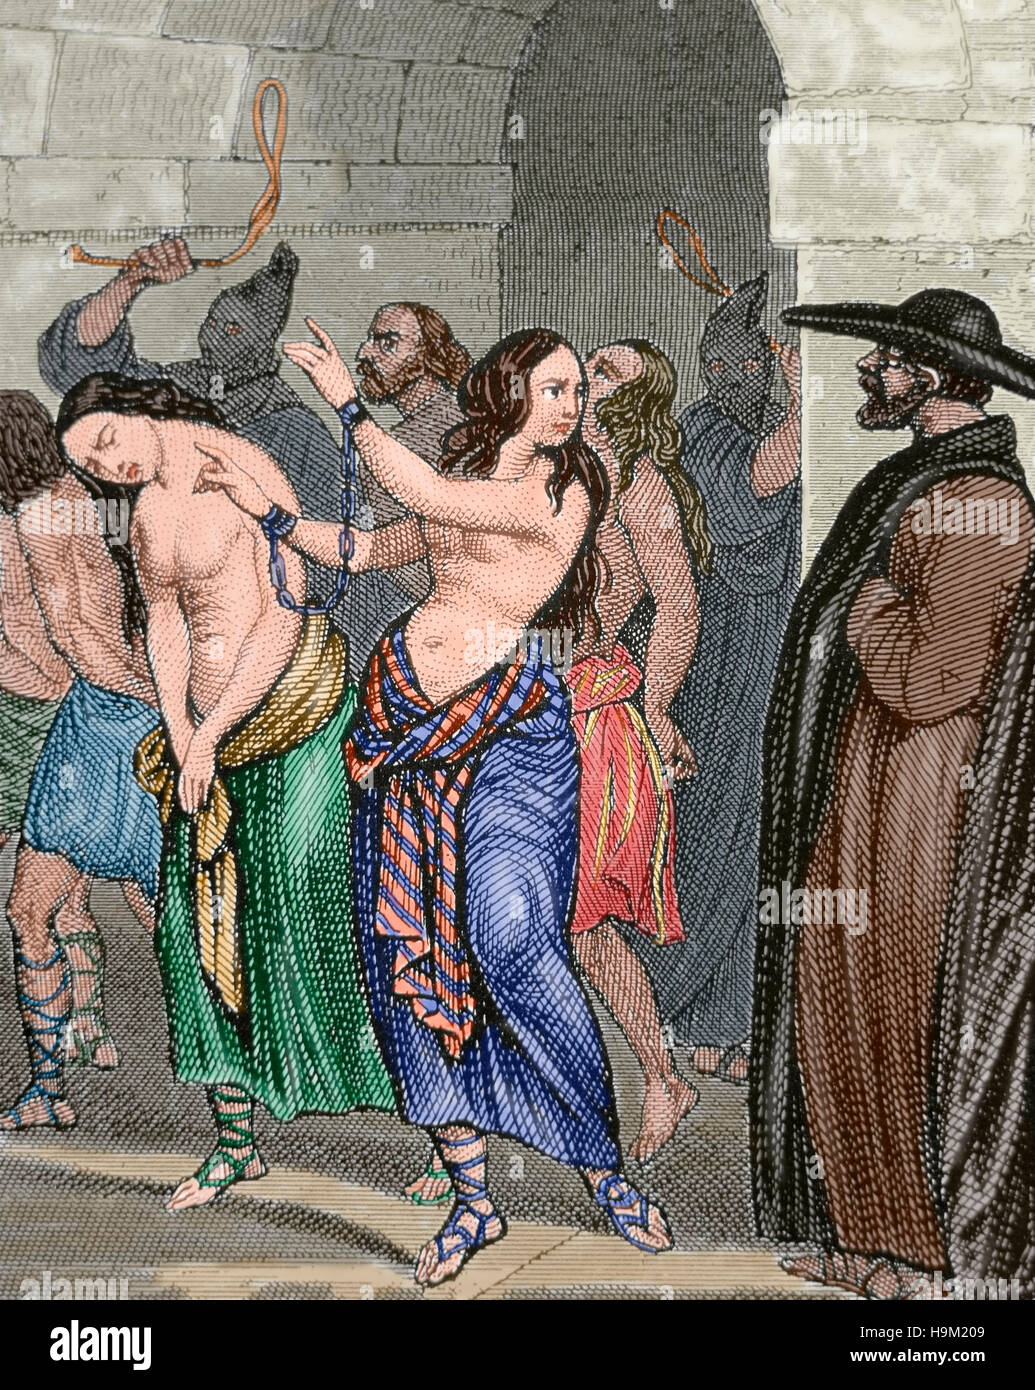 Middle Ages. Women accused of witchcraft leading to prison. Engraving, 19th century. Colored. - Stock Image